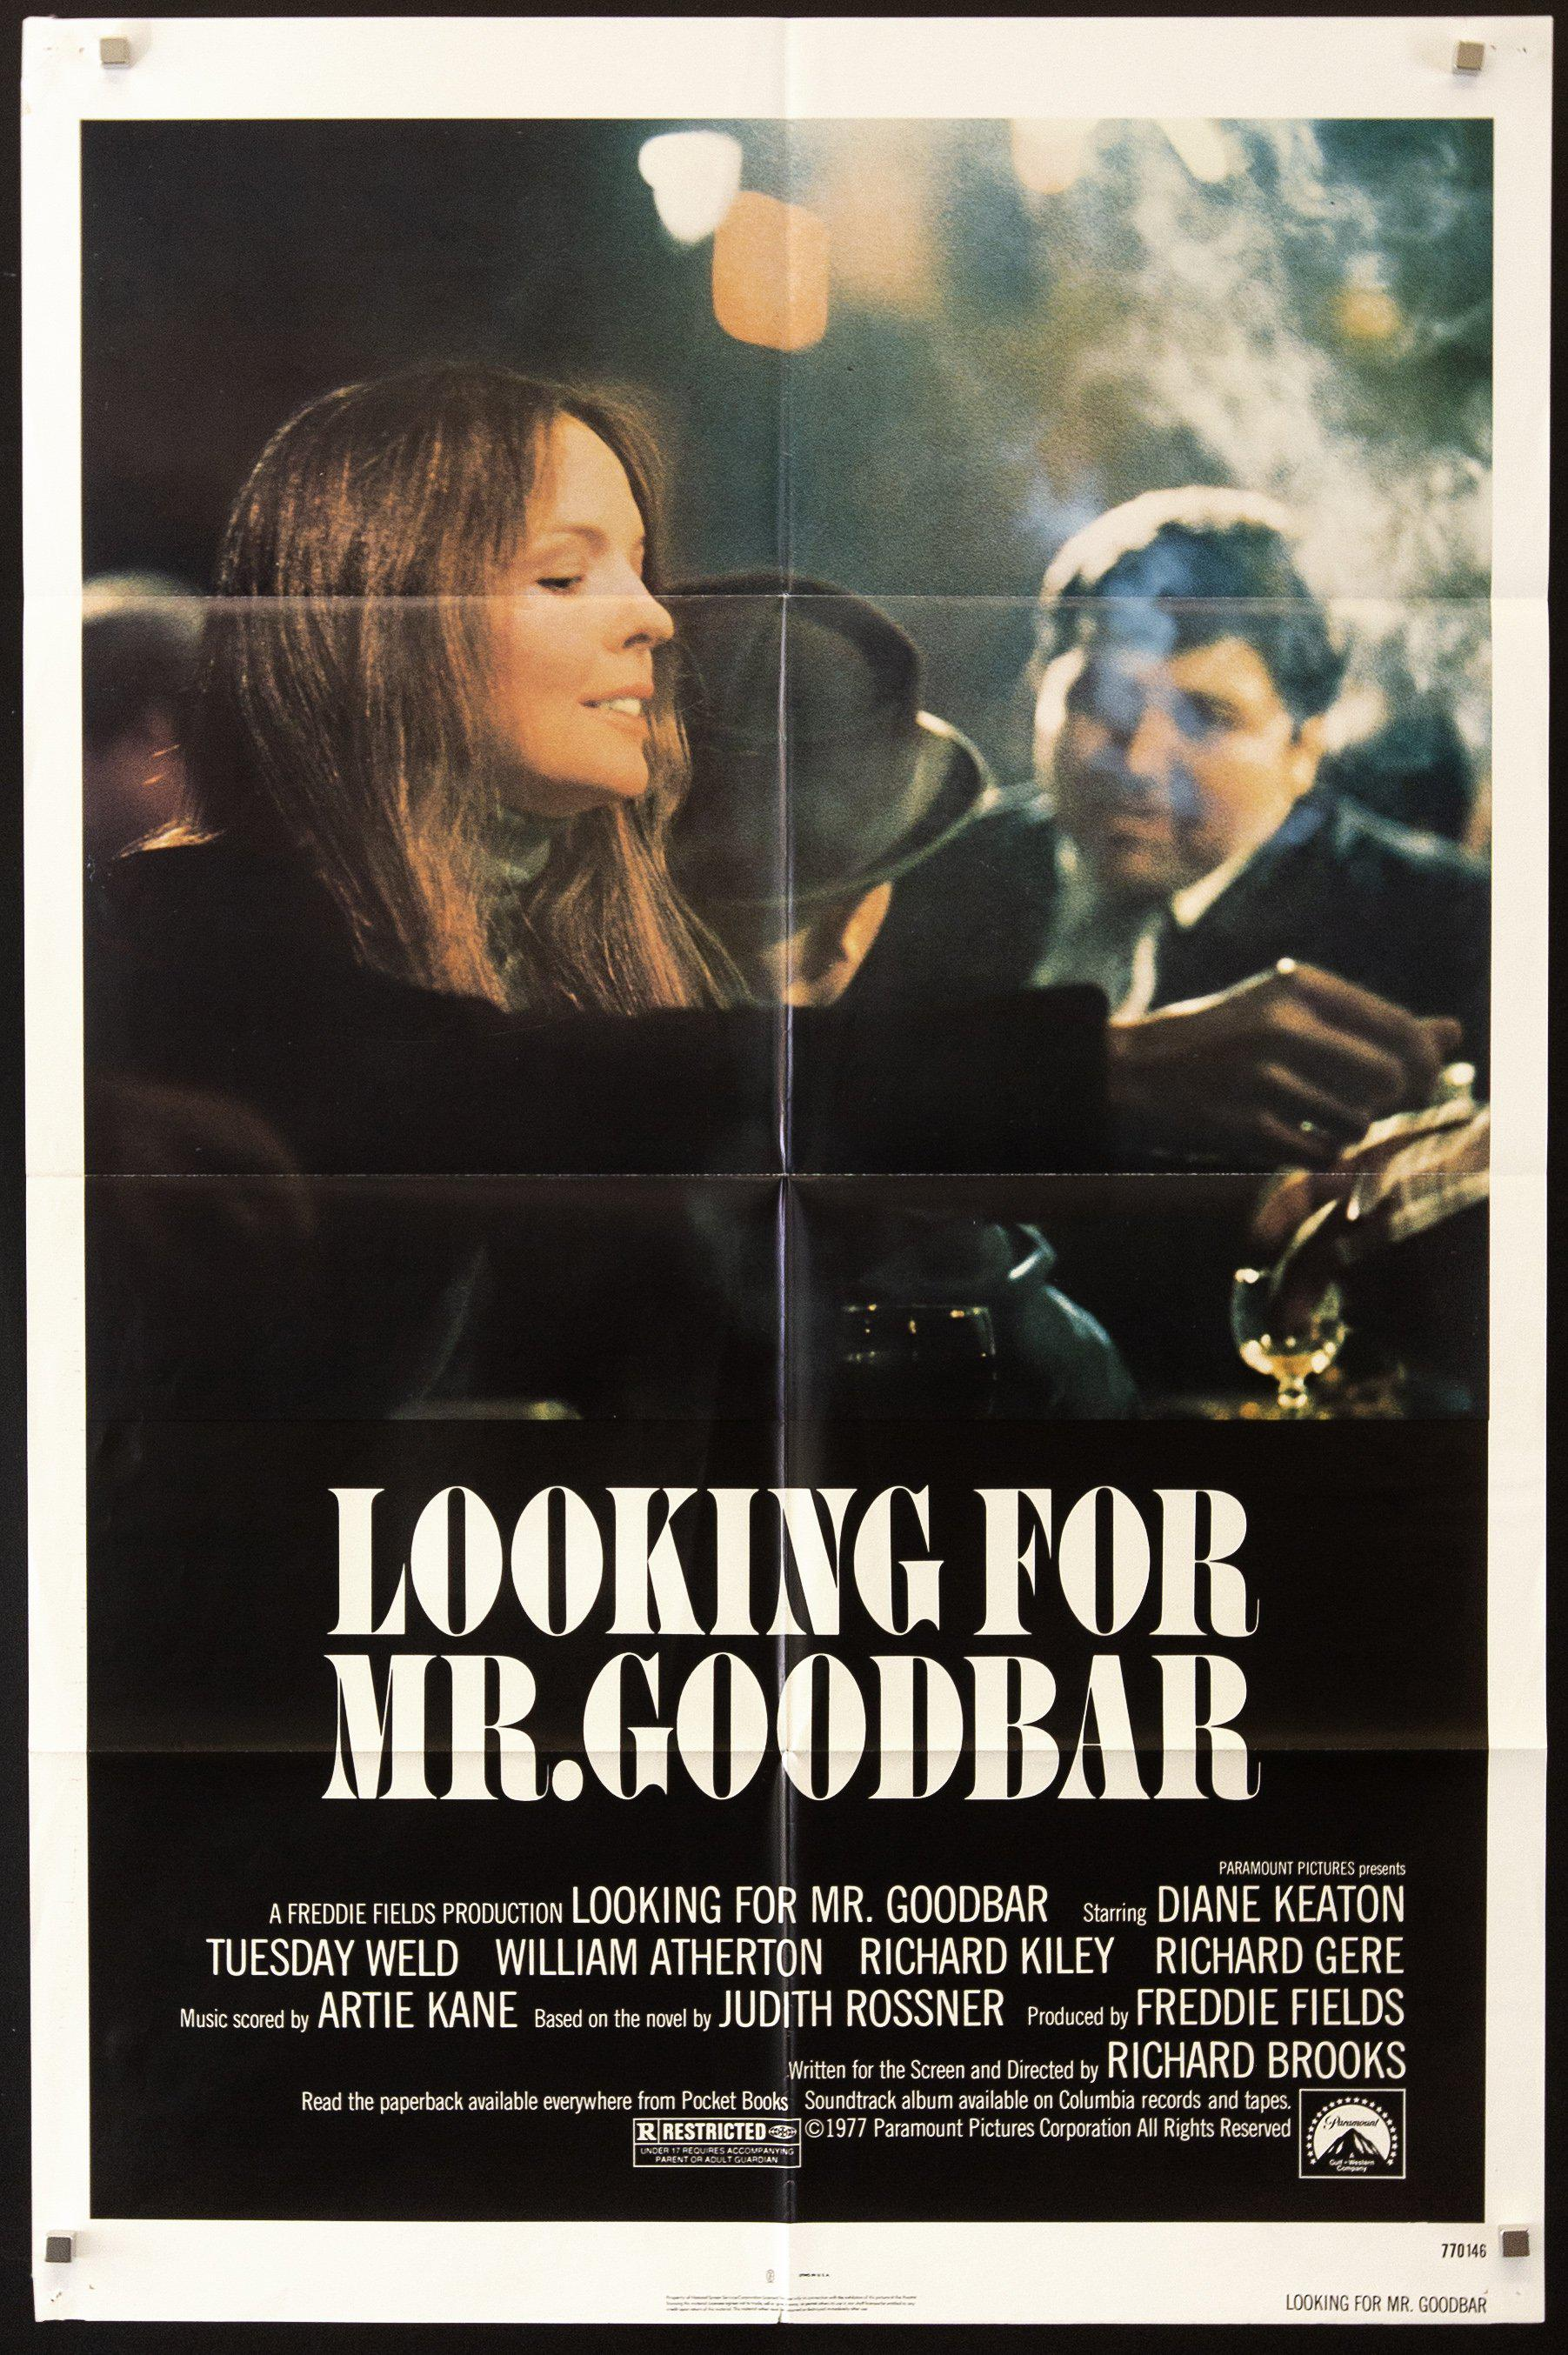 Looking for Mr. Goodbar 1 Sheet (27x41) Original Vintage Movie Poster